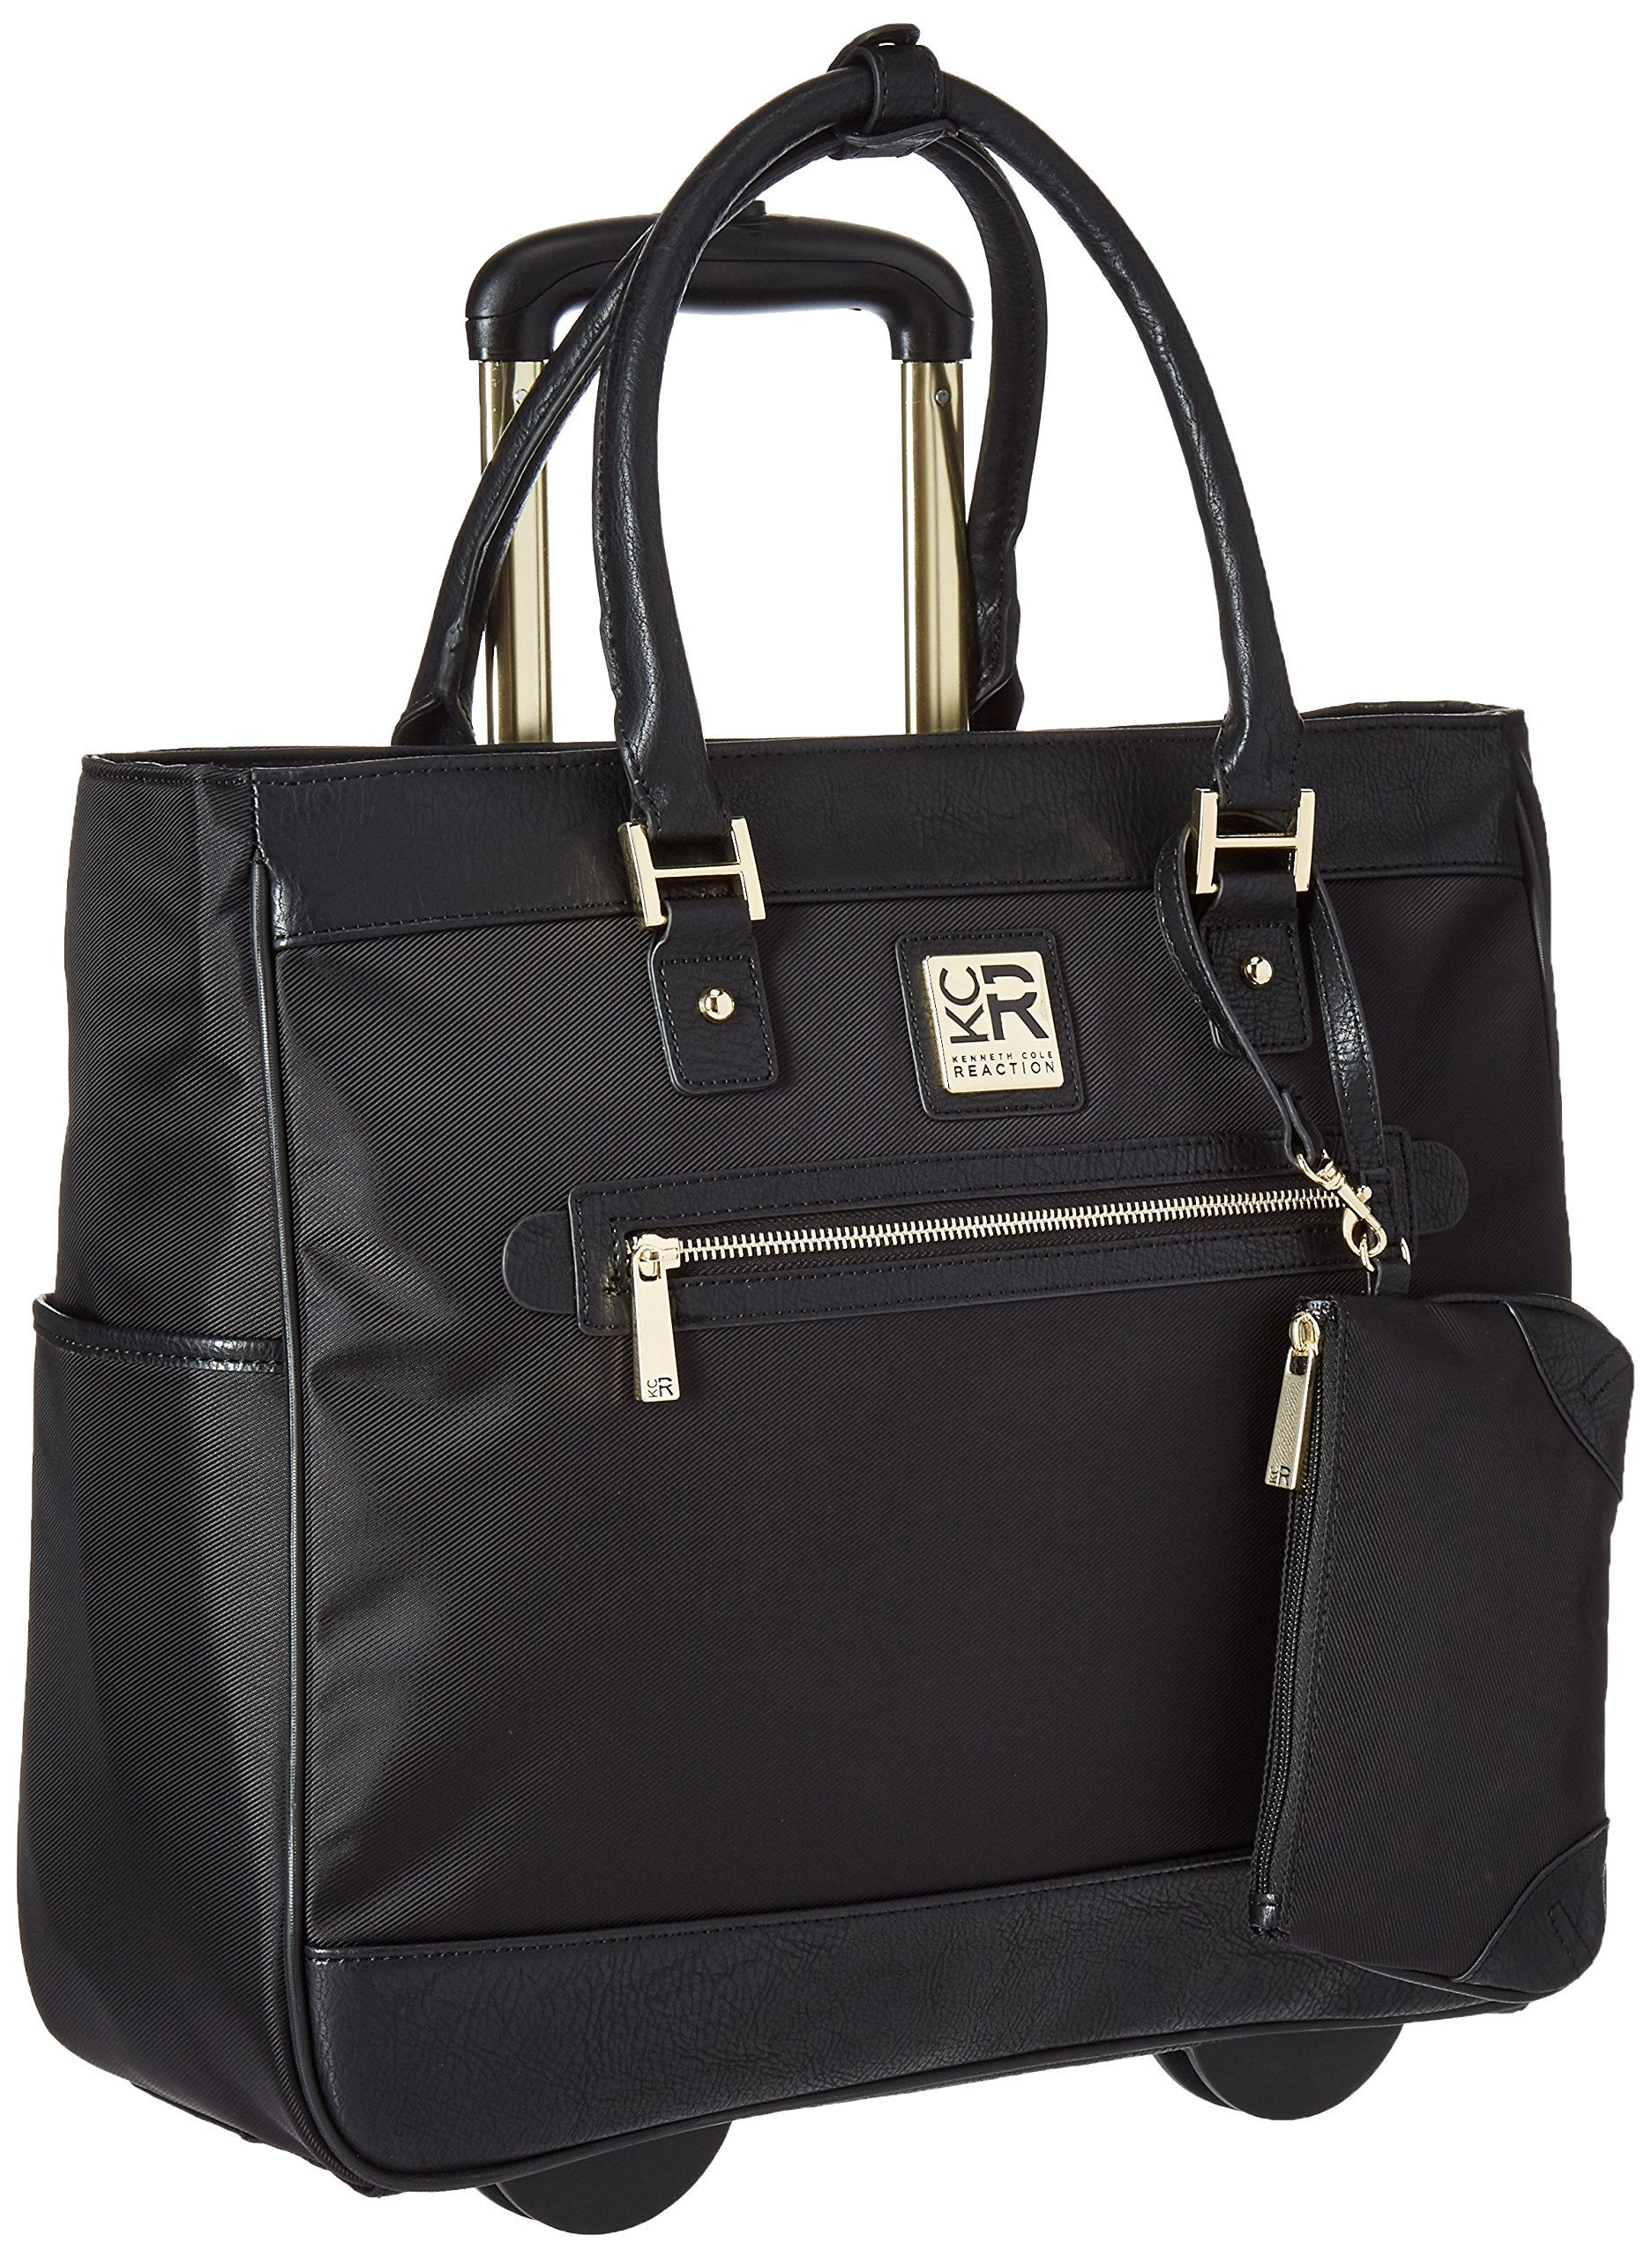 Kenneth Cole Reaction Call It Off, Black, One Size by Kenneth Cole REACTION